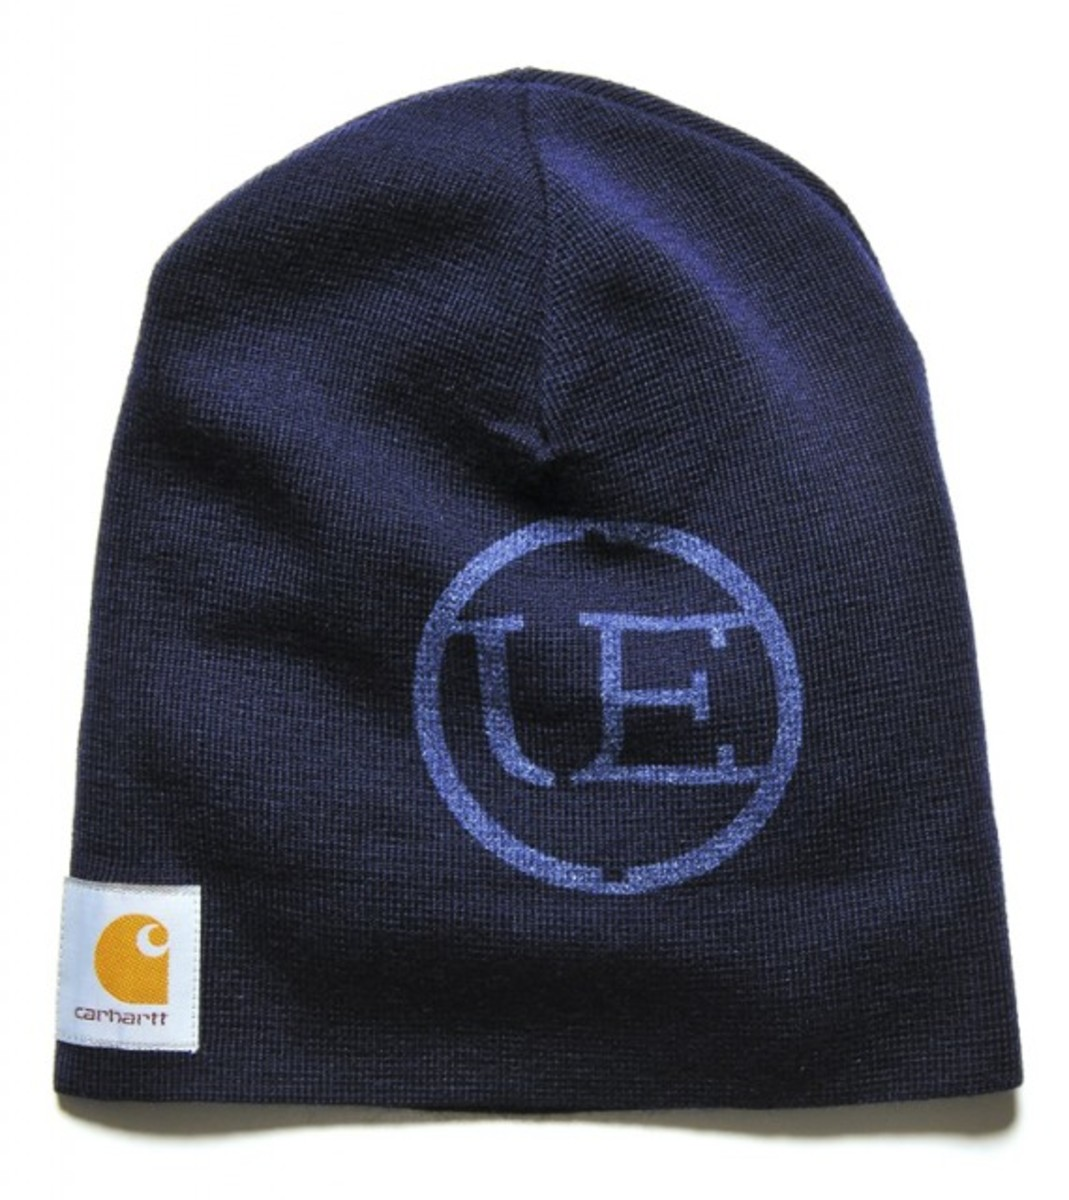 uniform-experiment-carhartt-knit-cap-06